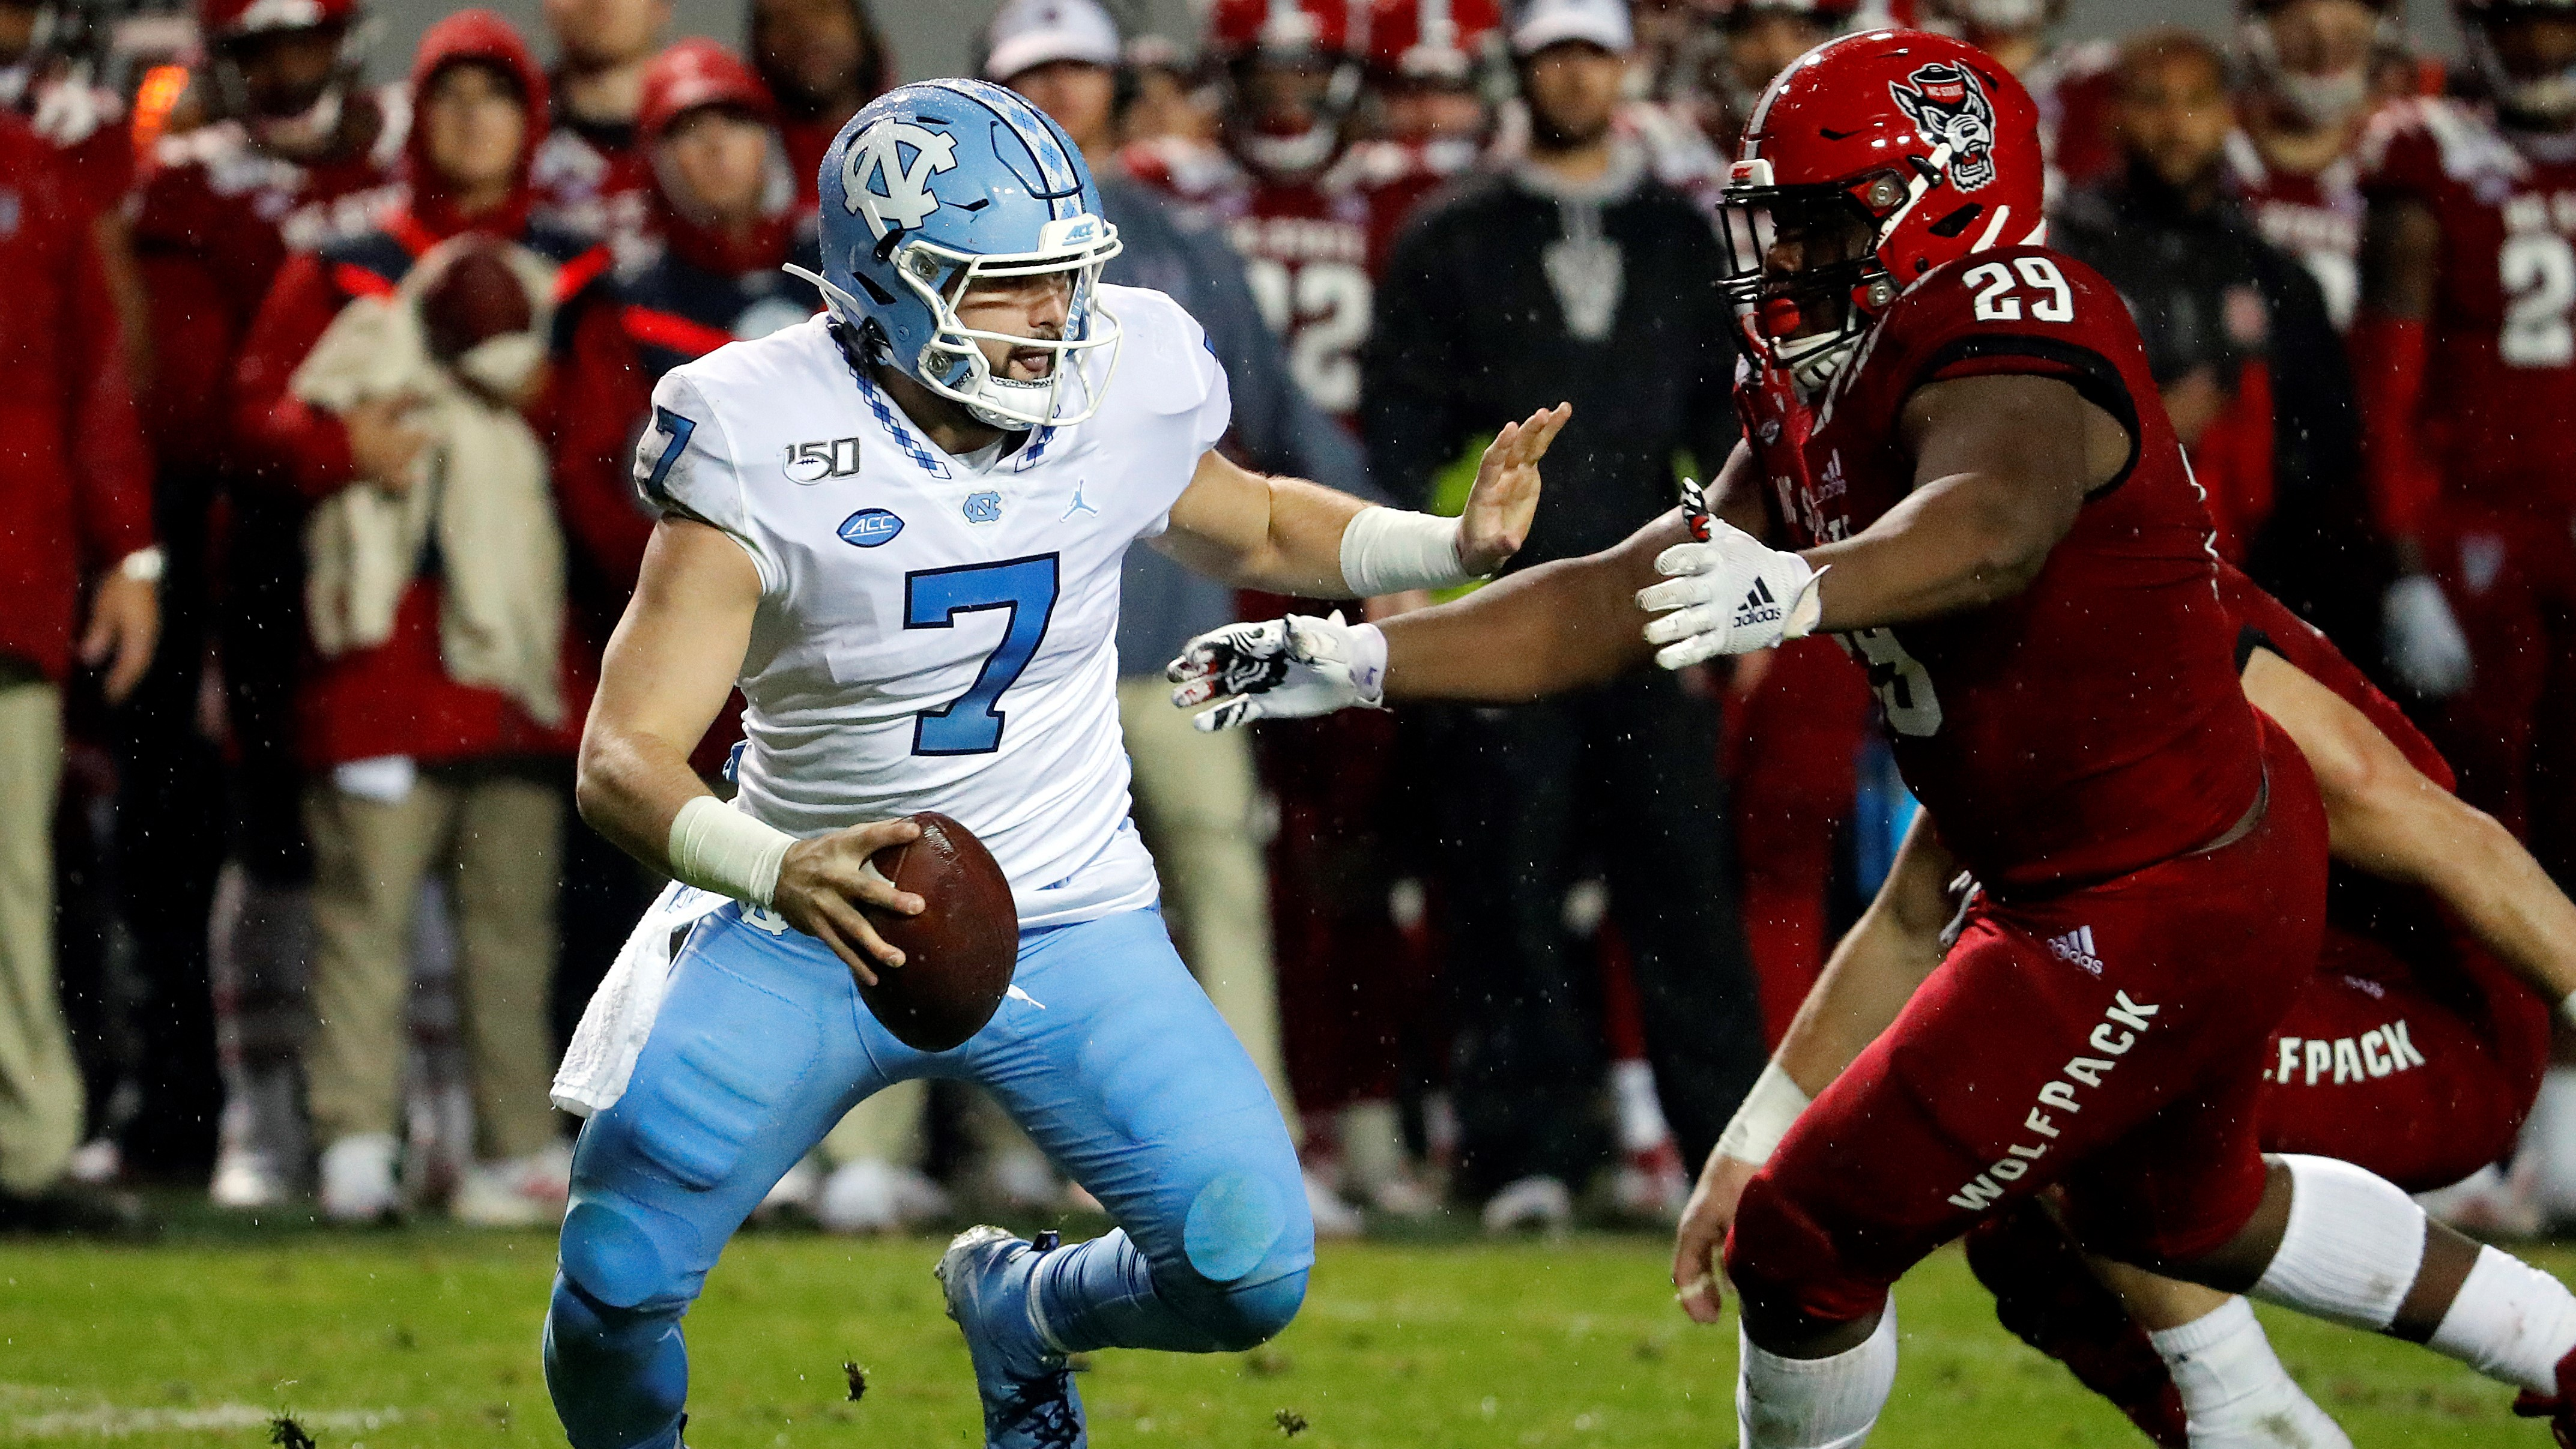 2020 football schedule for Duke, UNC, NC State revealed ...North Carolina Football Schedule 2020